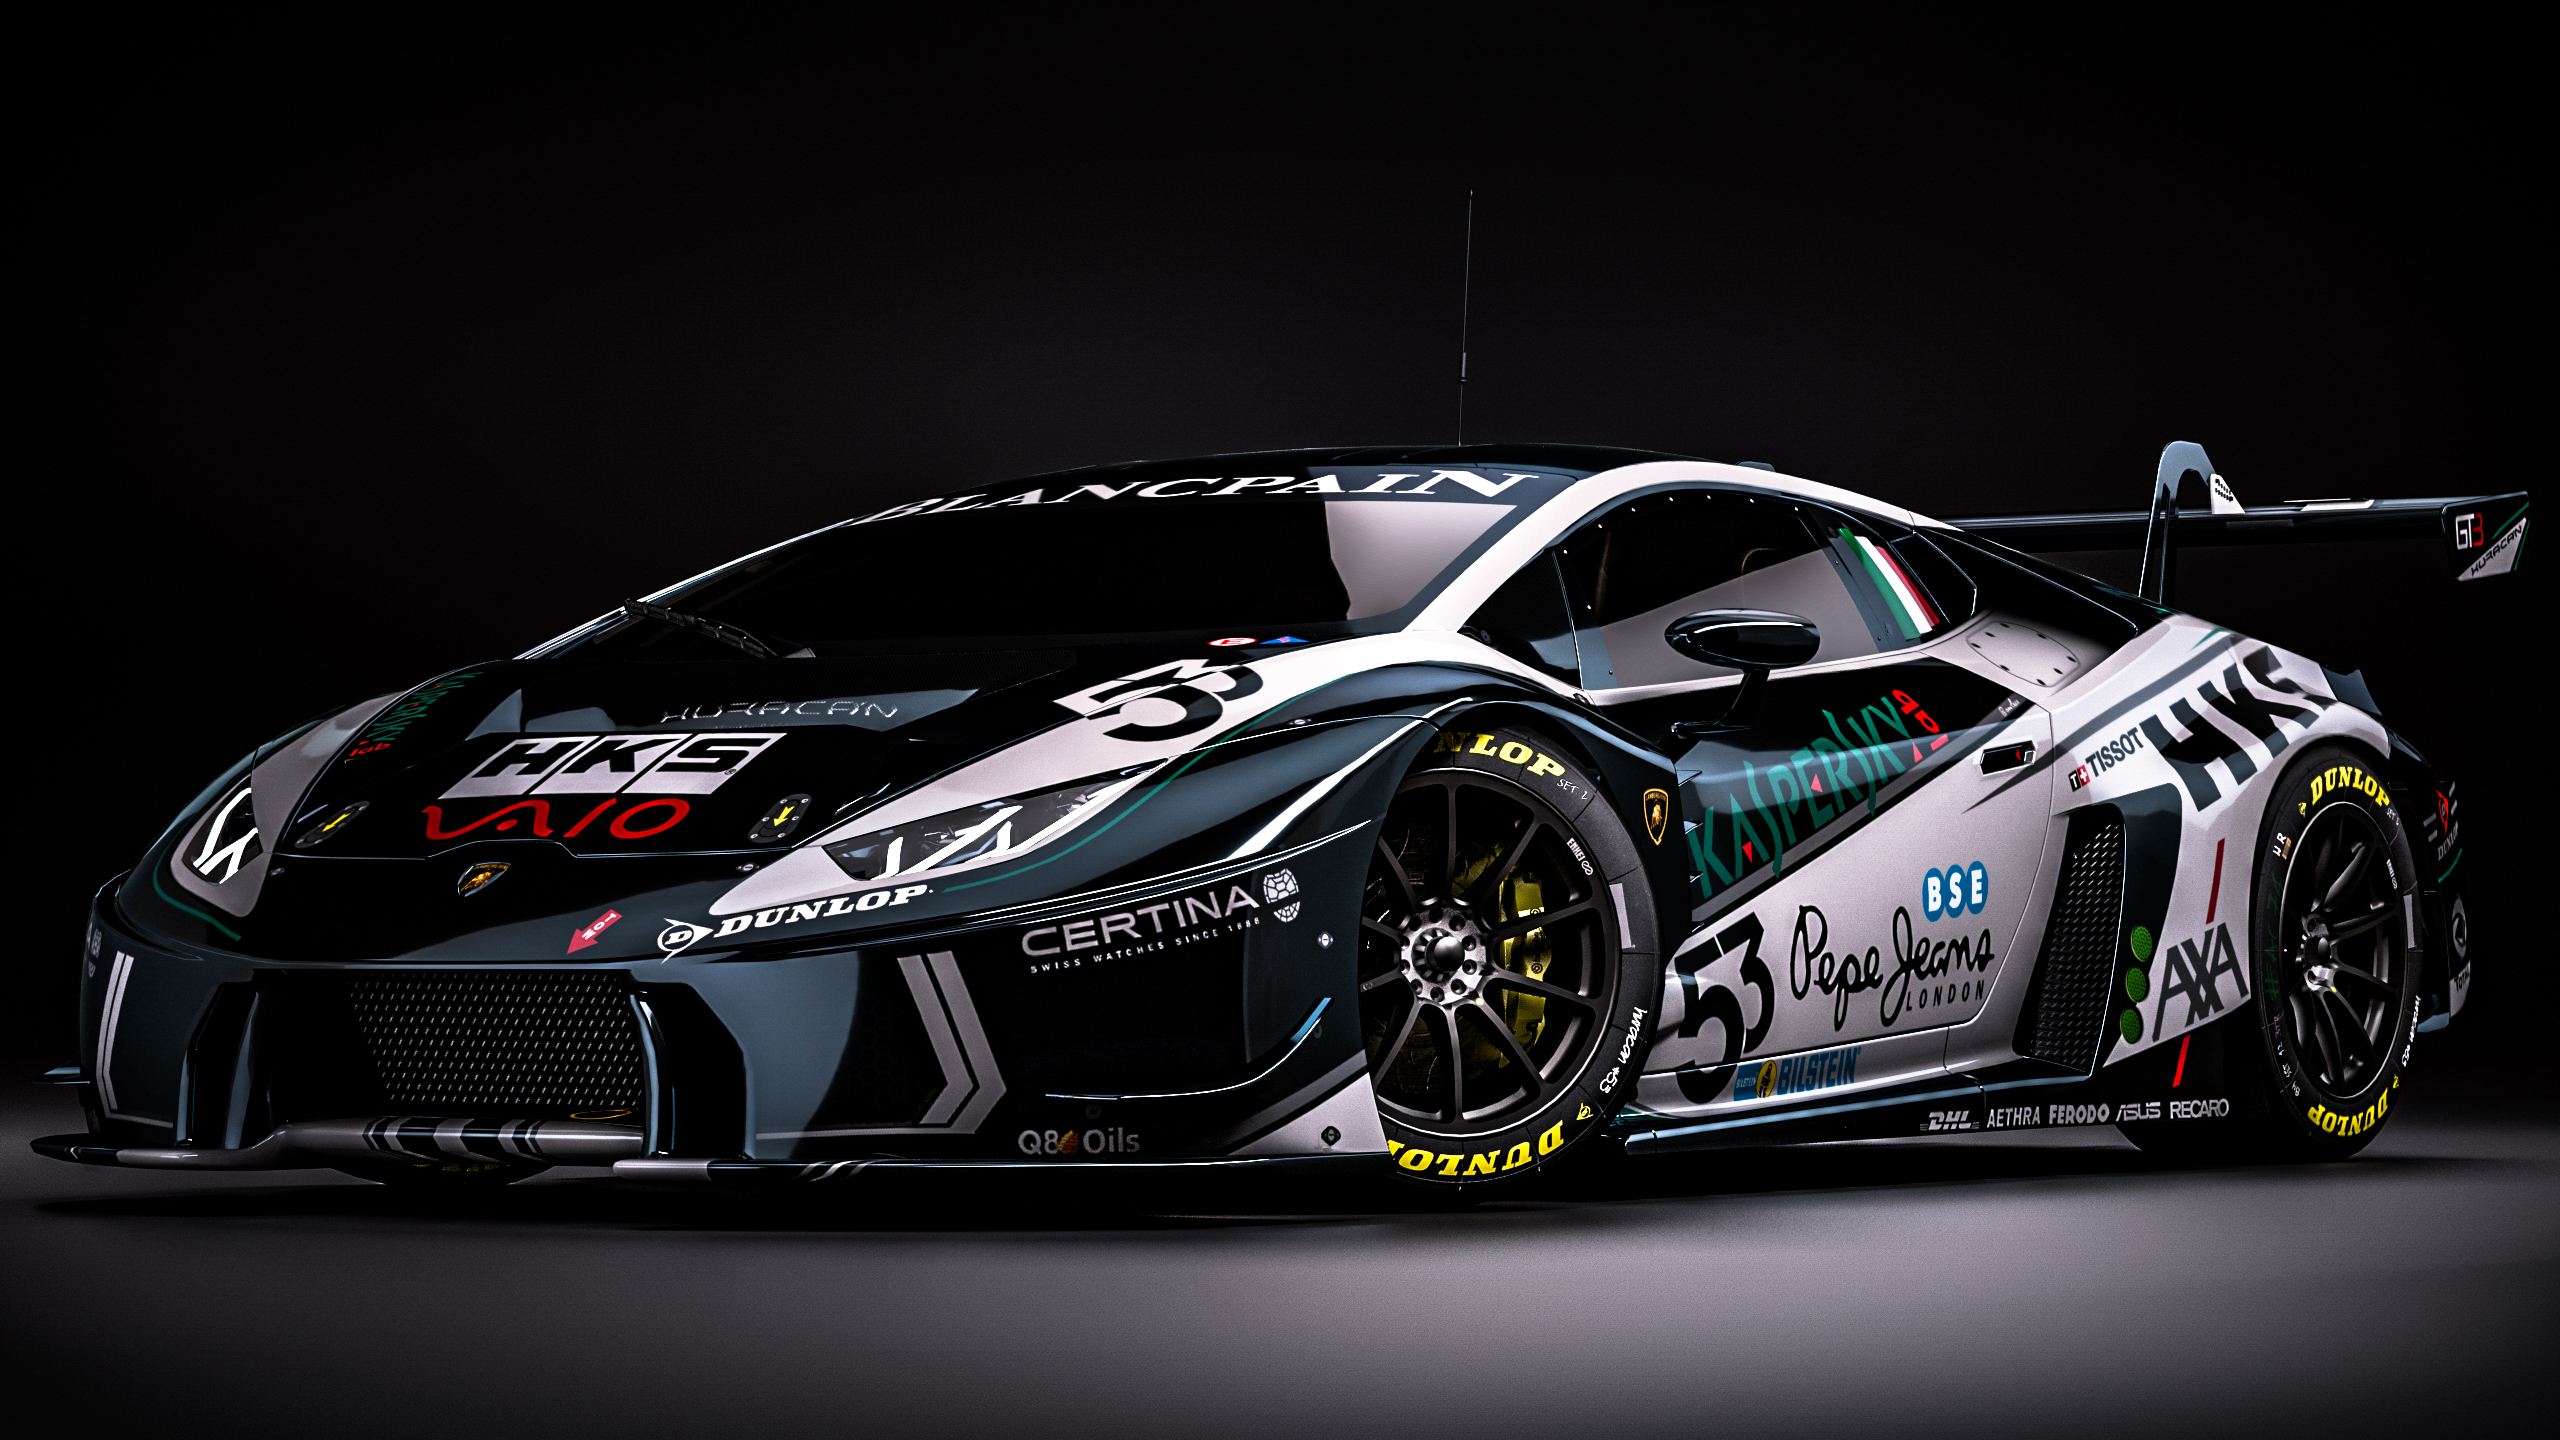 Lamborghini Huracan Gt3 Fantasy Kaspersky Livery By